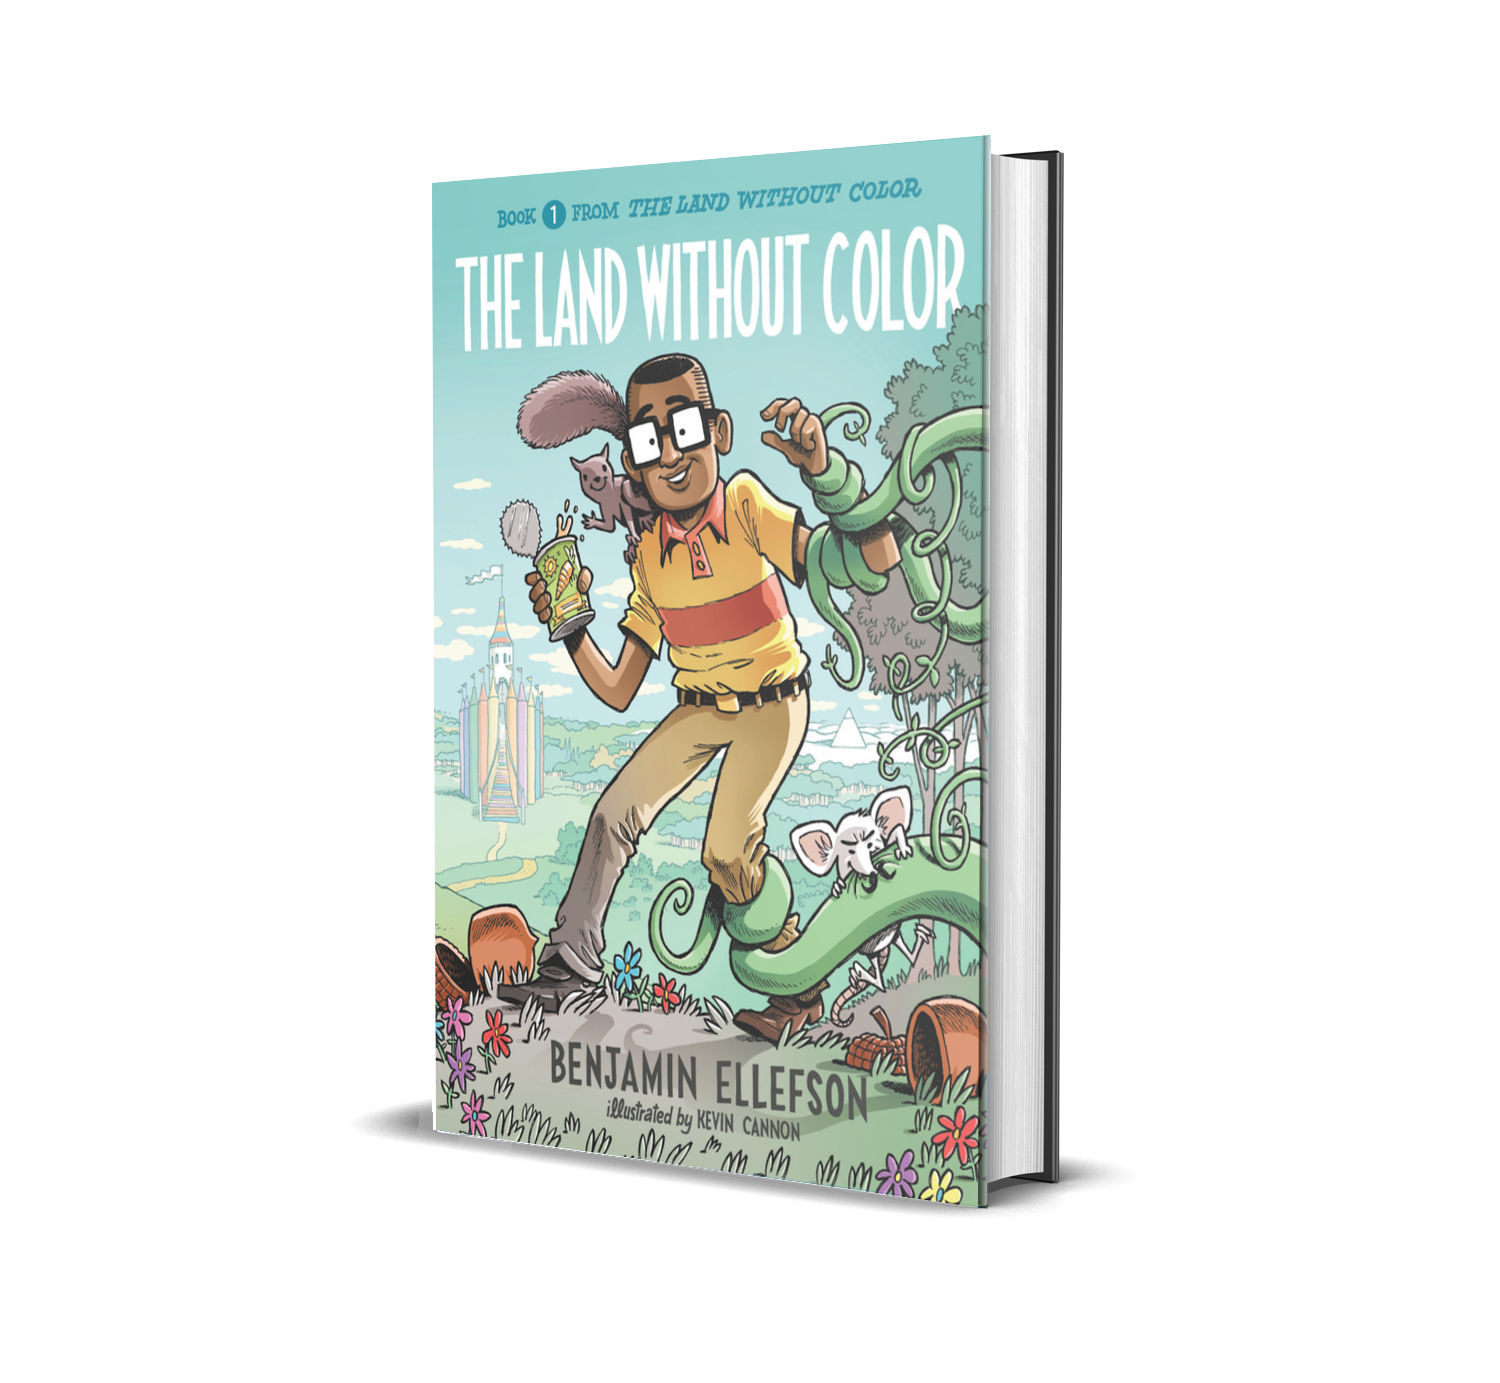 The Land Without Color